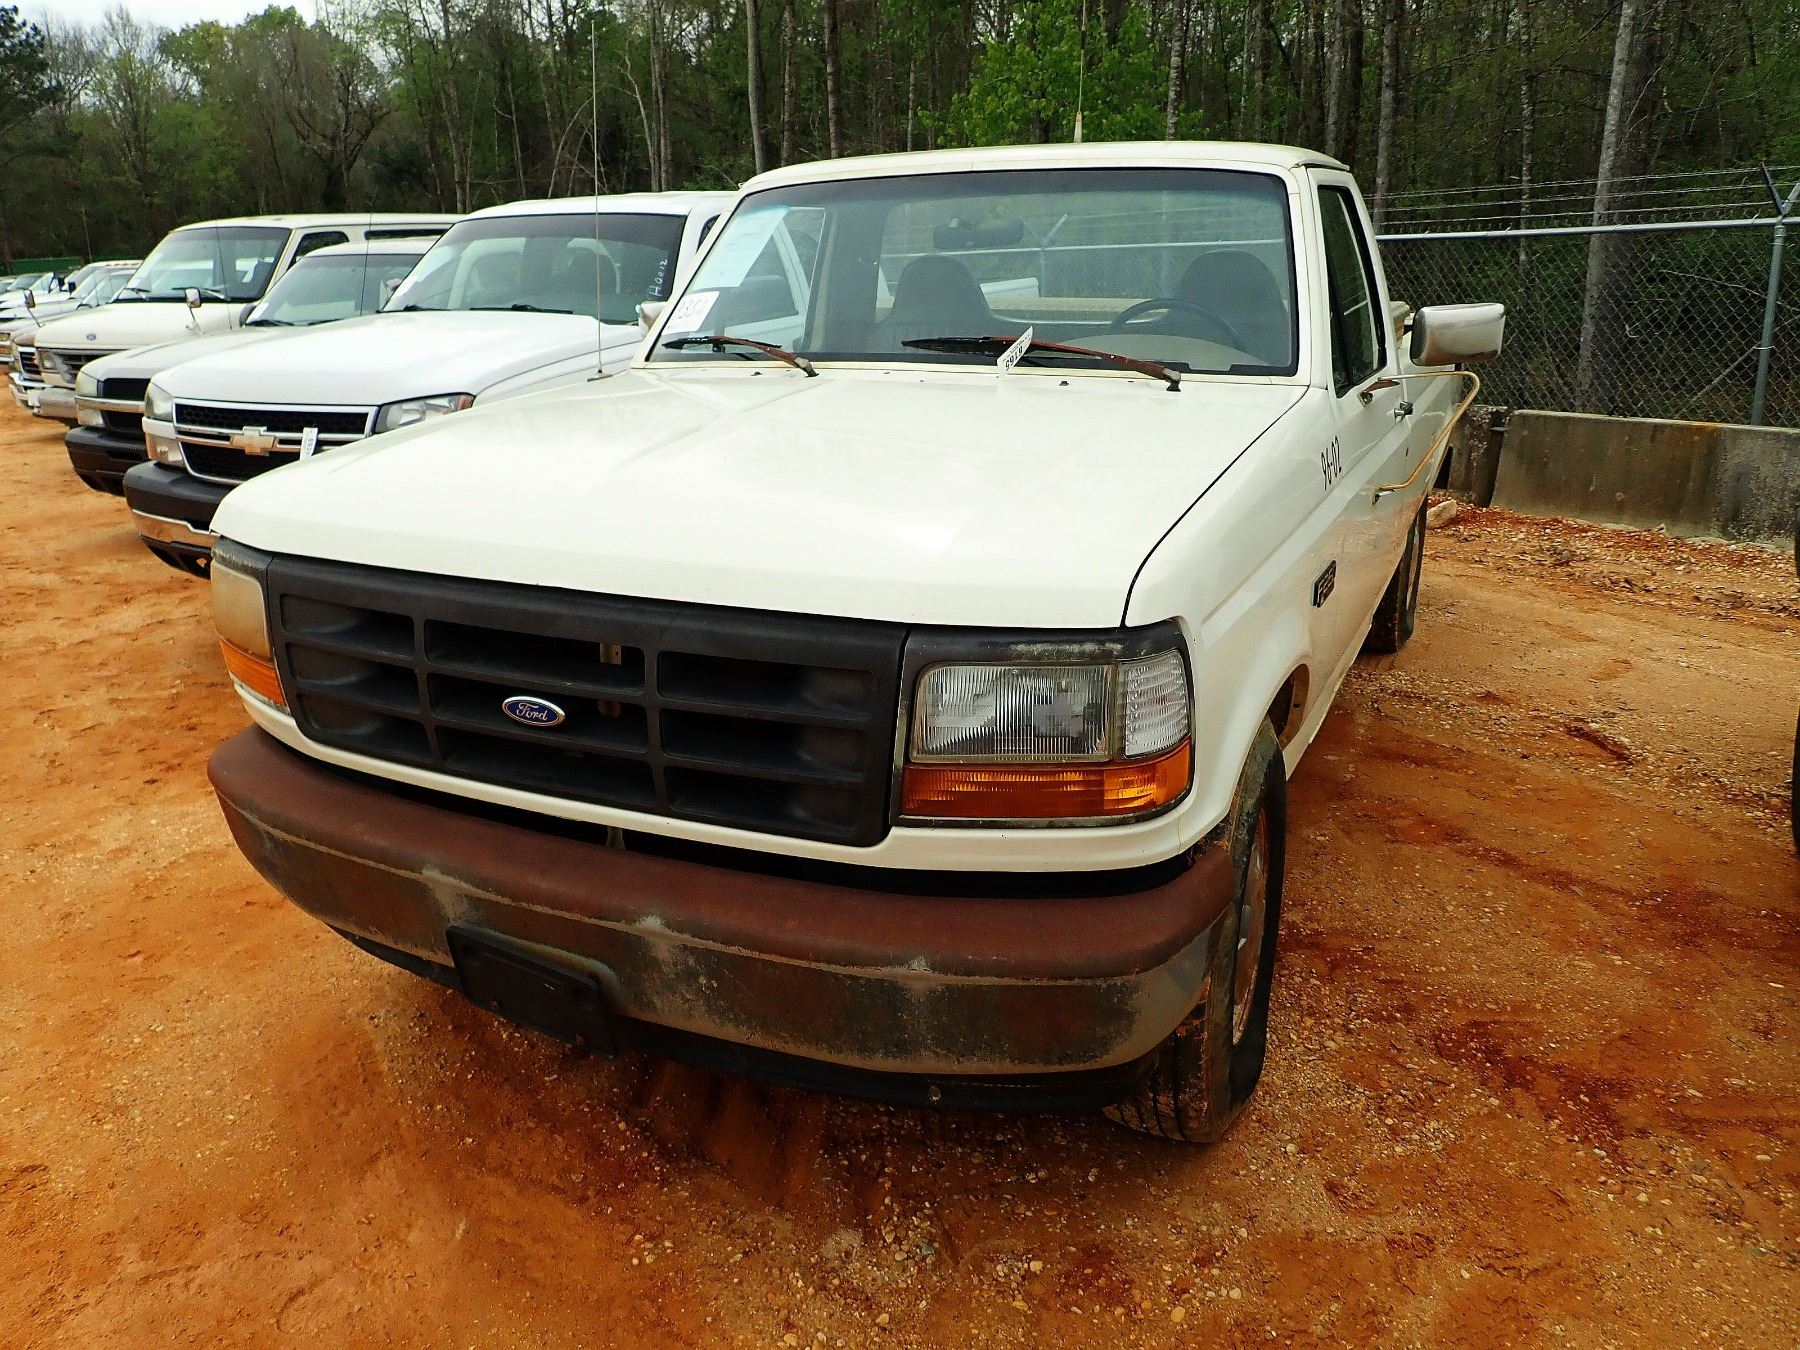 hight resolution of image 1 1996 ford f250 pickup vin sn zftef25n4tca71218 gas engine